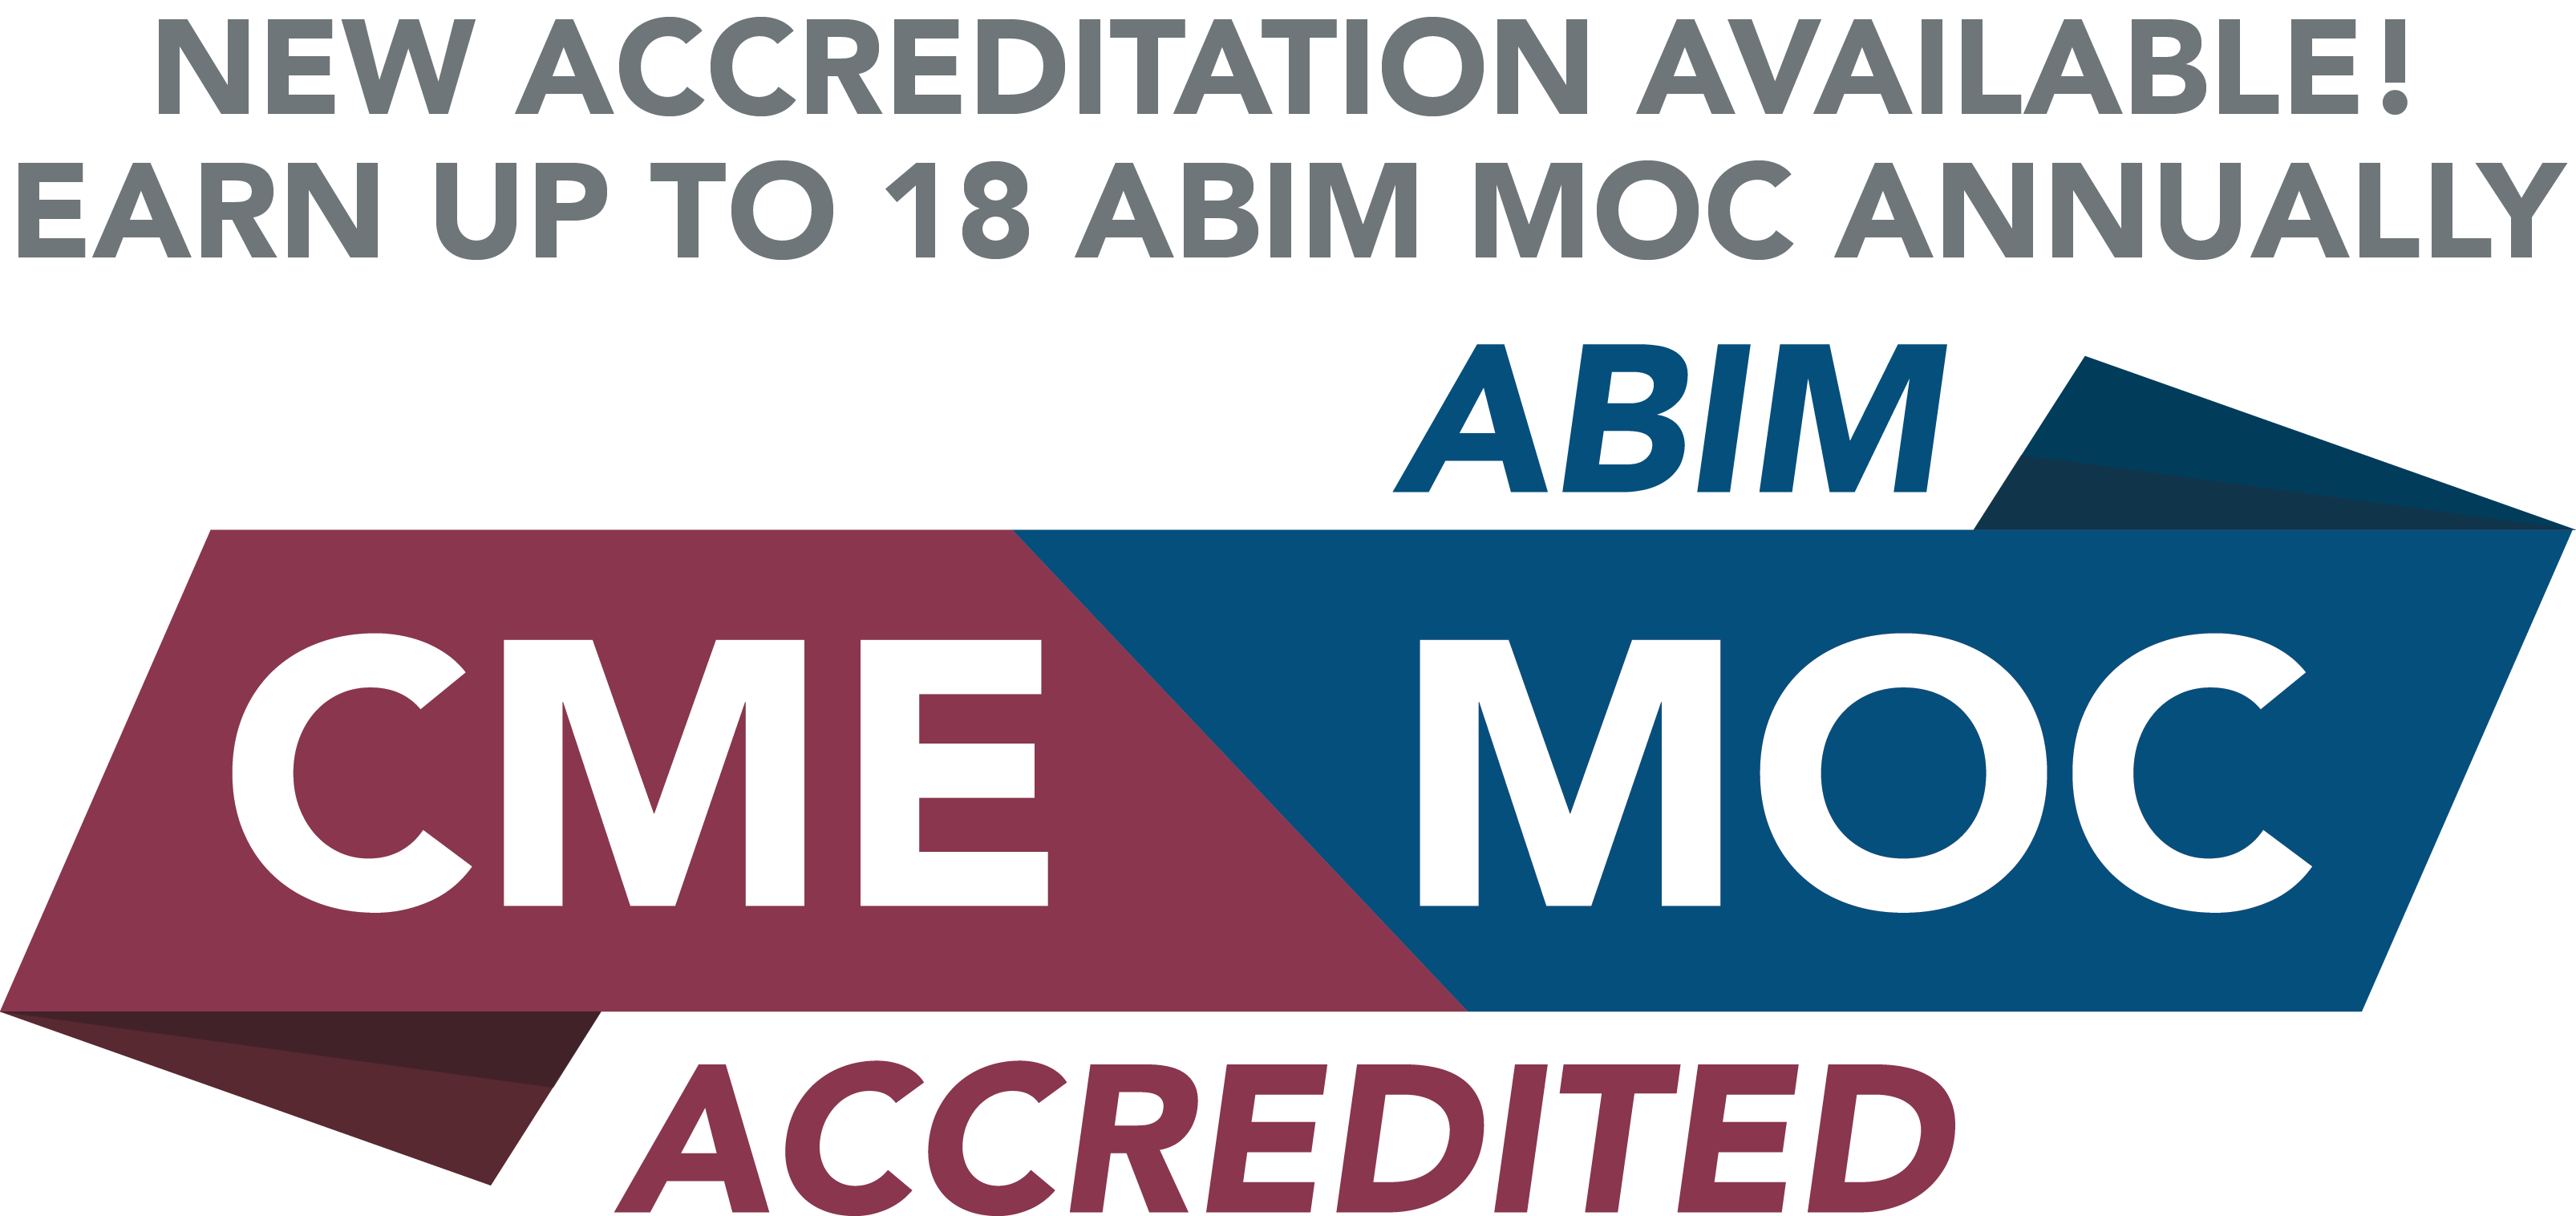 ABIM-CME-MOC-Badge_HIC_18_New.png